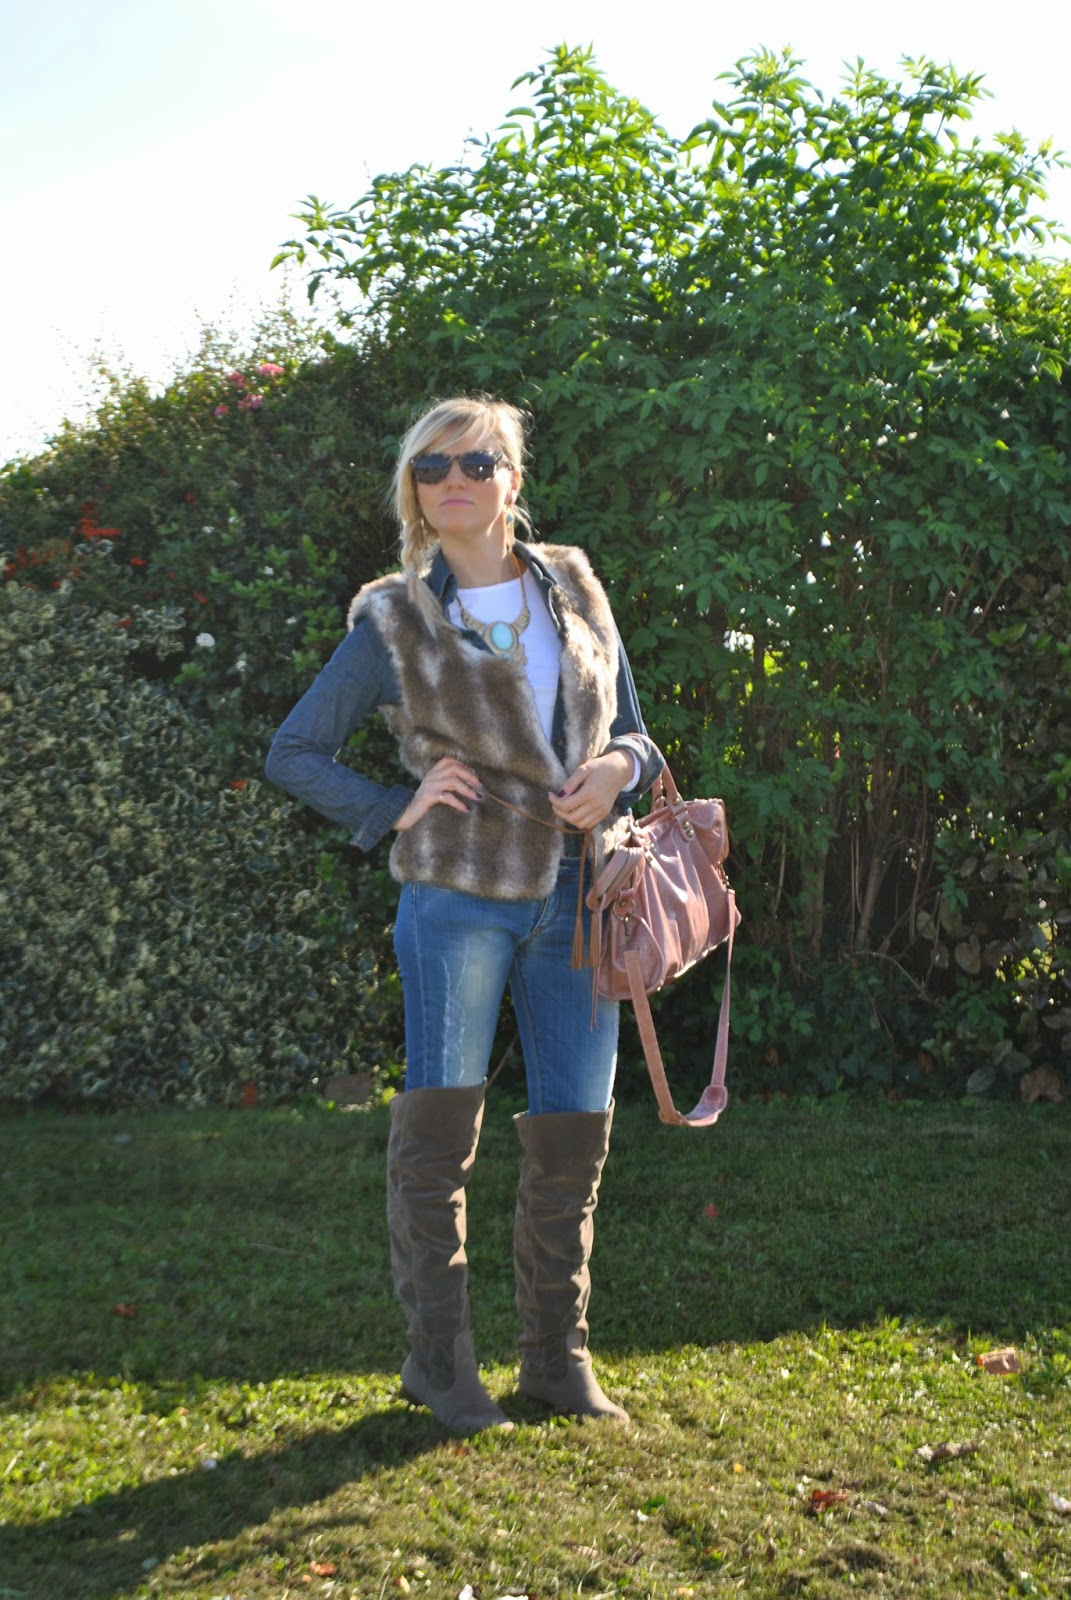 autumnal outfit cuissardes boots denim shirt faux fur vest fashion bloggers italy italian girl  outfit in denim denim total look how to wear denim shirt outfit gilet pelliccia how to wear fur vest outfit cuissardes outfit jeans skinny abbinamenti cuissardes how to wear cuissardes abbinamenti camicia jeans come abbinare la camicia di jeans camicia in denim tendenze autunno inverno 2014 2015camicia di jeans borsa rosa cipria balenciaga occhiali da sole carrera collana etnica majique ethnic necklace majique london orecchini majique london oro e pietre azzurre earrings majique gold and turquoise stone earrings majique fashion blog italiani fashion blogger italiane fashion blogger milano fashion blogger bionde ragazze bionde fashion blog milano acconciatura treccia laterale occhiali da sole carrera mariafelicia magno mariafelicia magno fashion blogger colorblock by felym outfit autunnali outfit casual outfit casual autunnali outfit novembre 2014